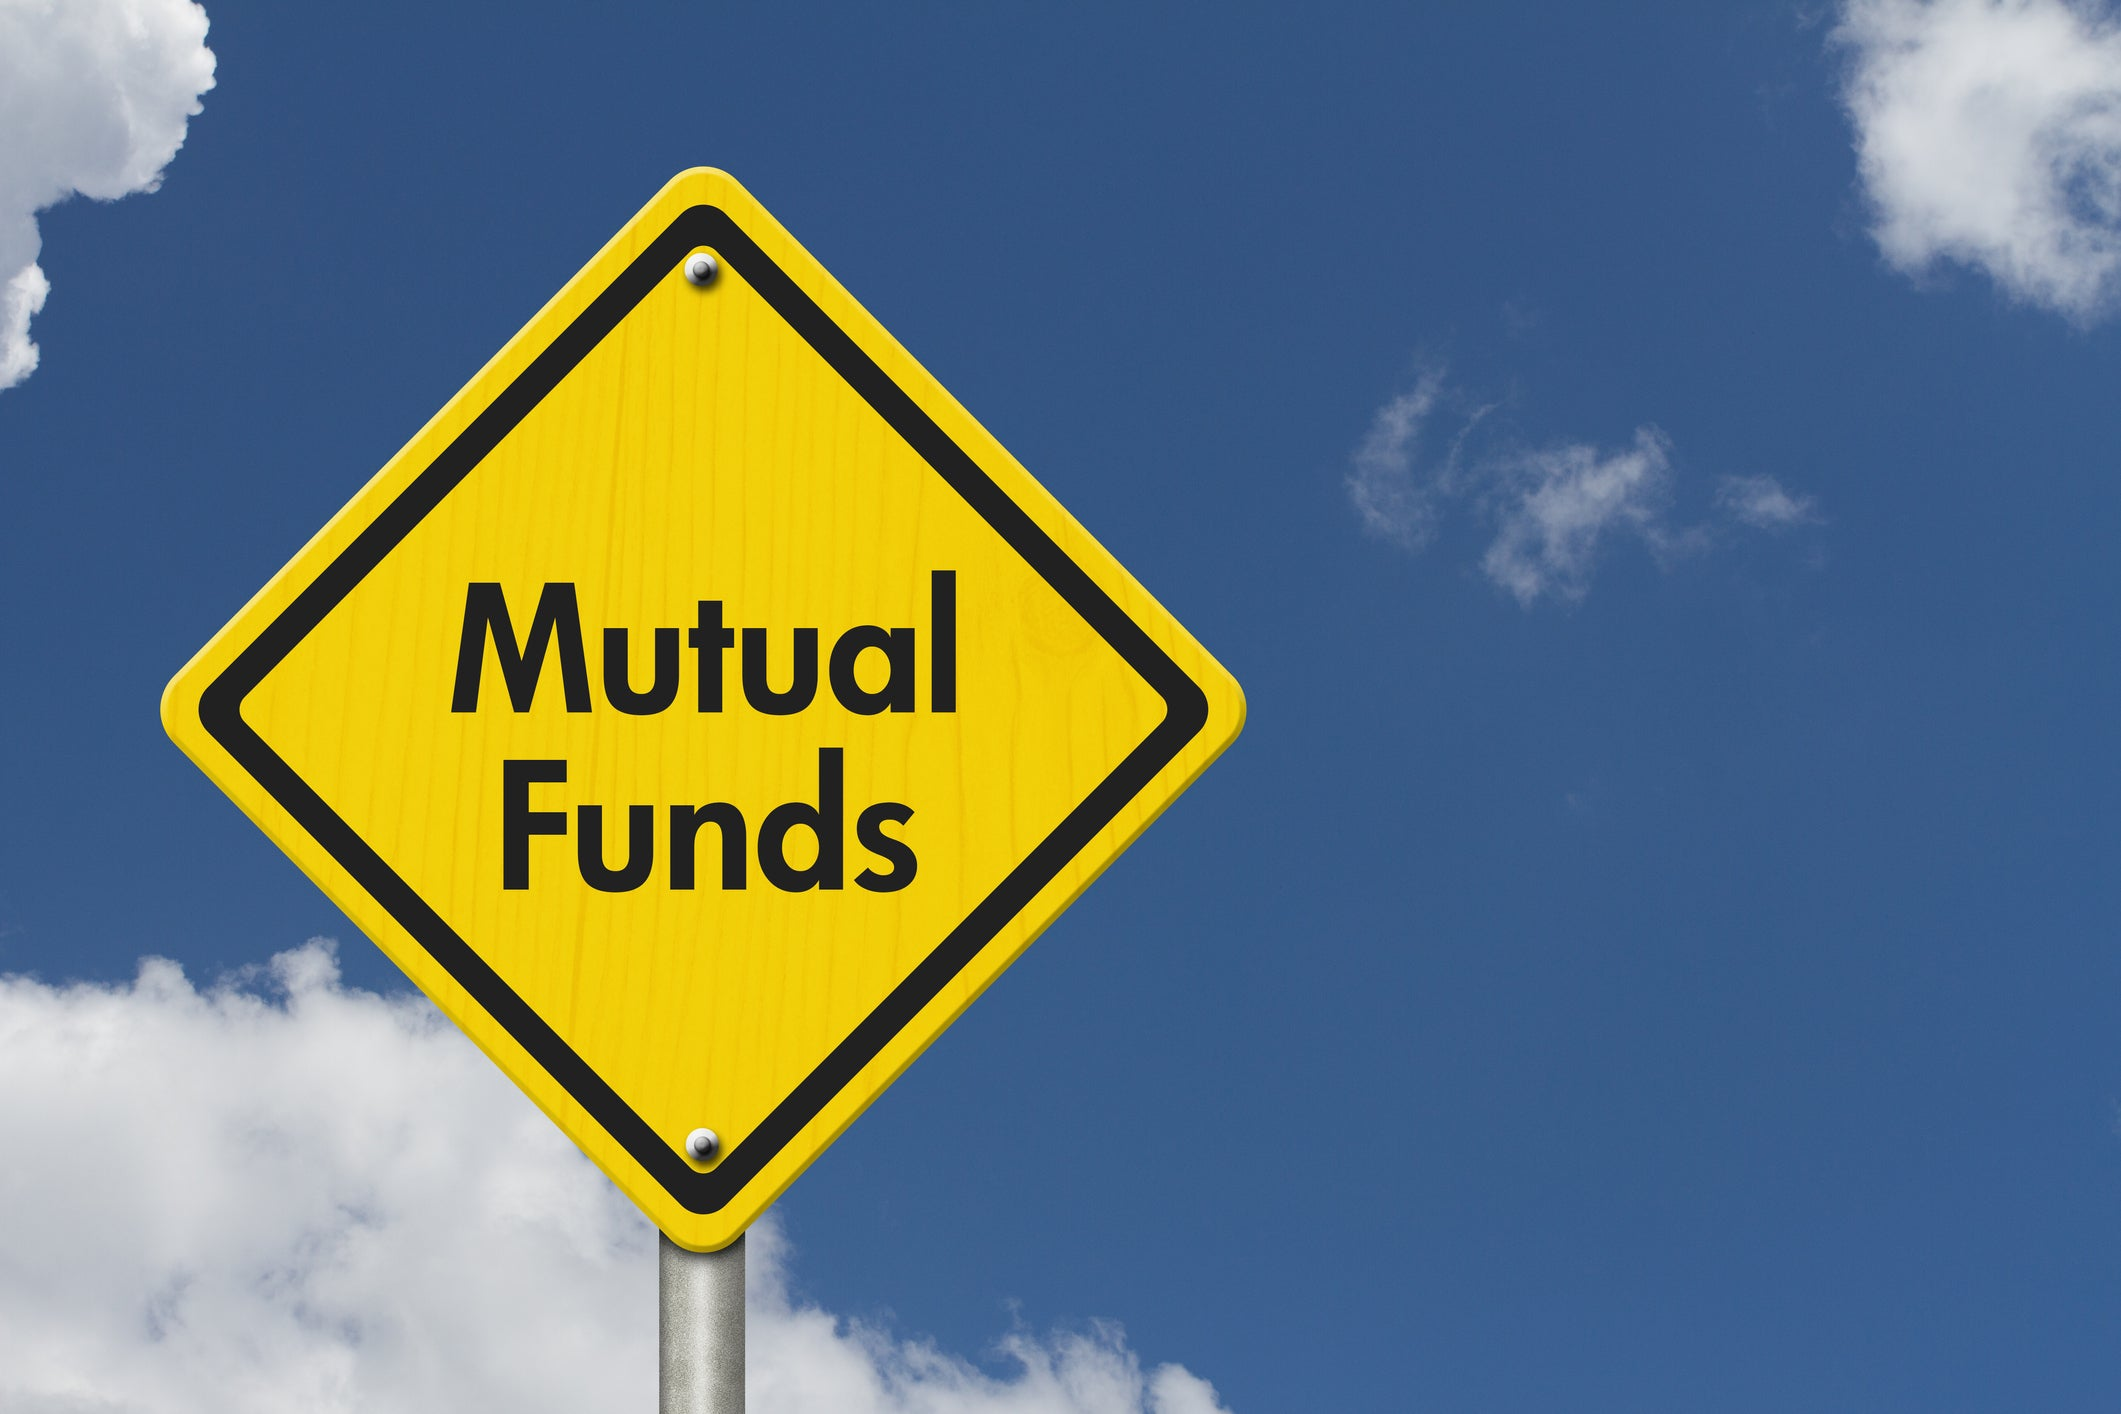 The Best Mutual Funds to Buy in 2019 | The Motley Fool